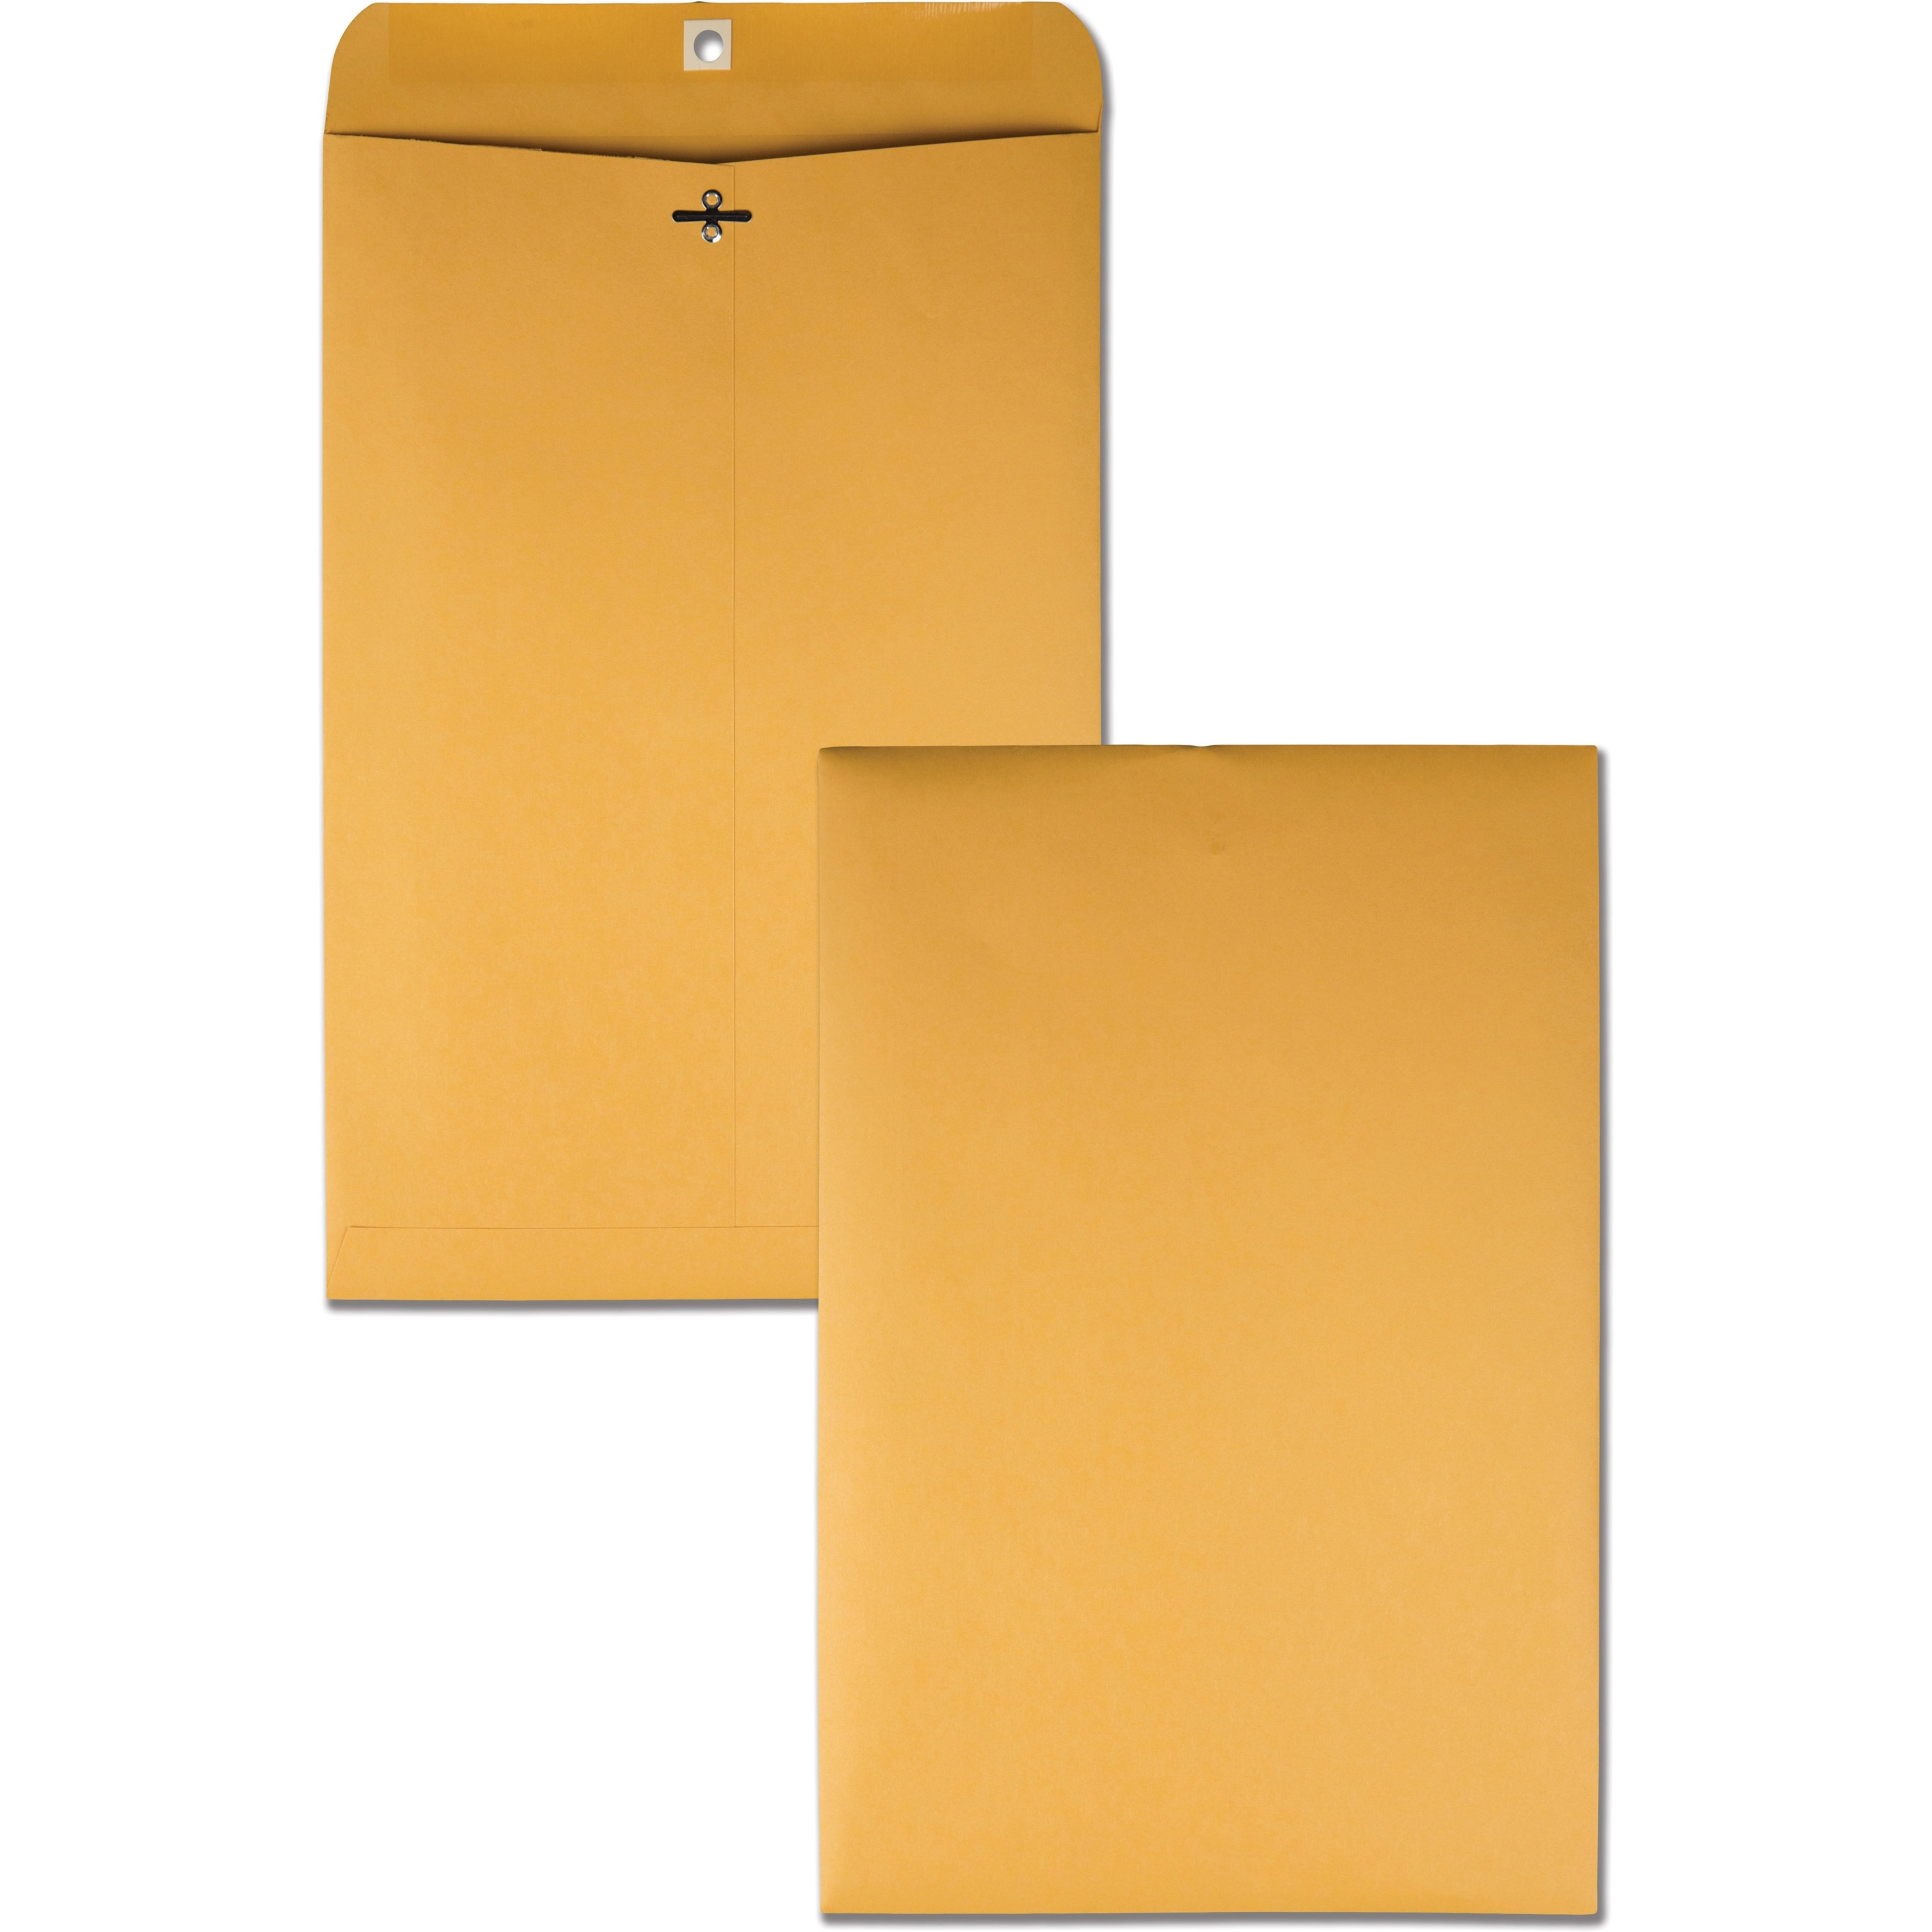 Clasp Envelope, 10 x 15, 32lb, Brown Kraft, 100/Box